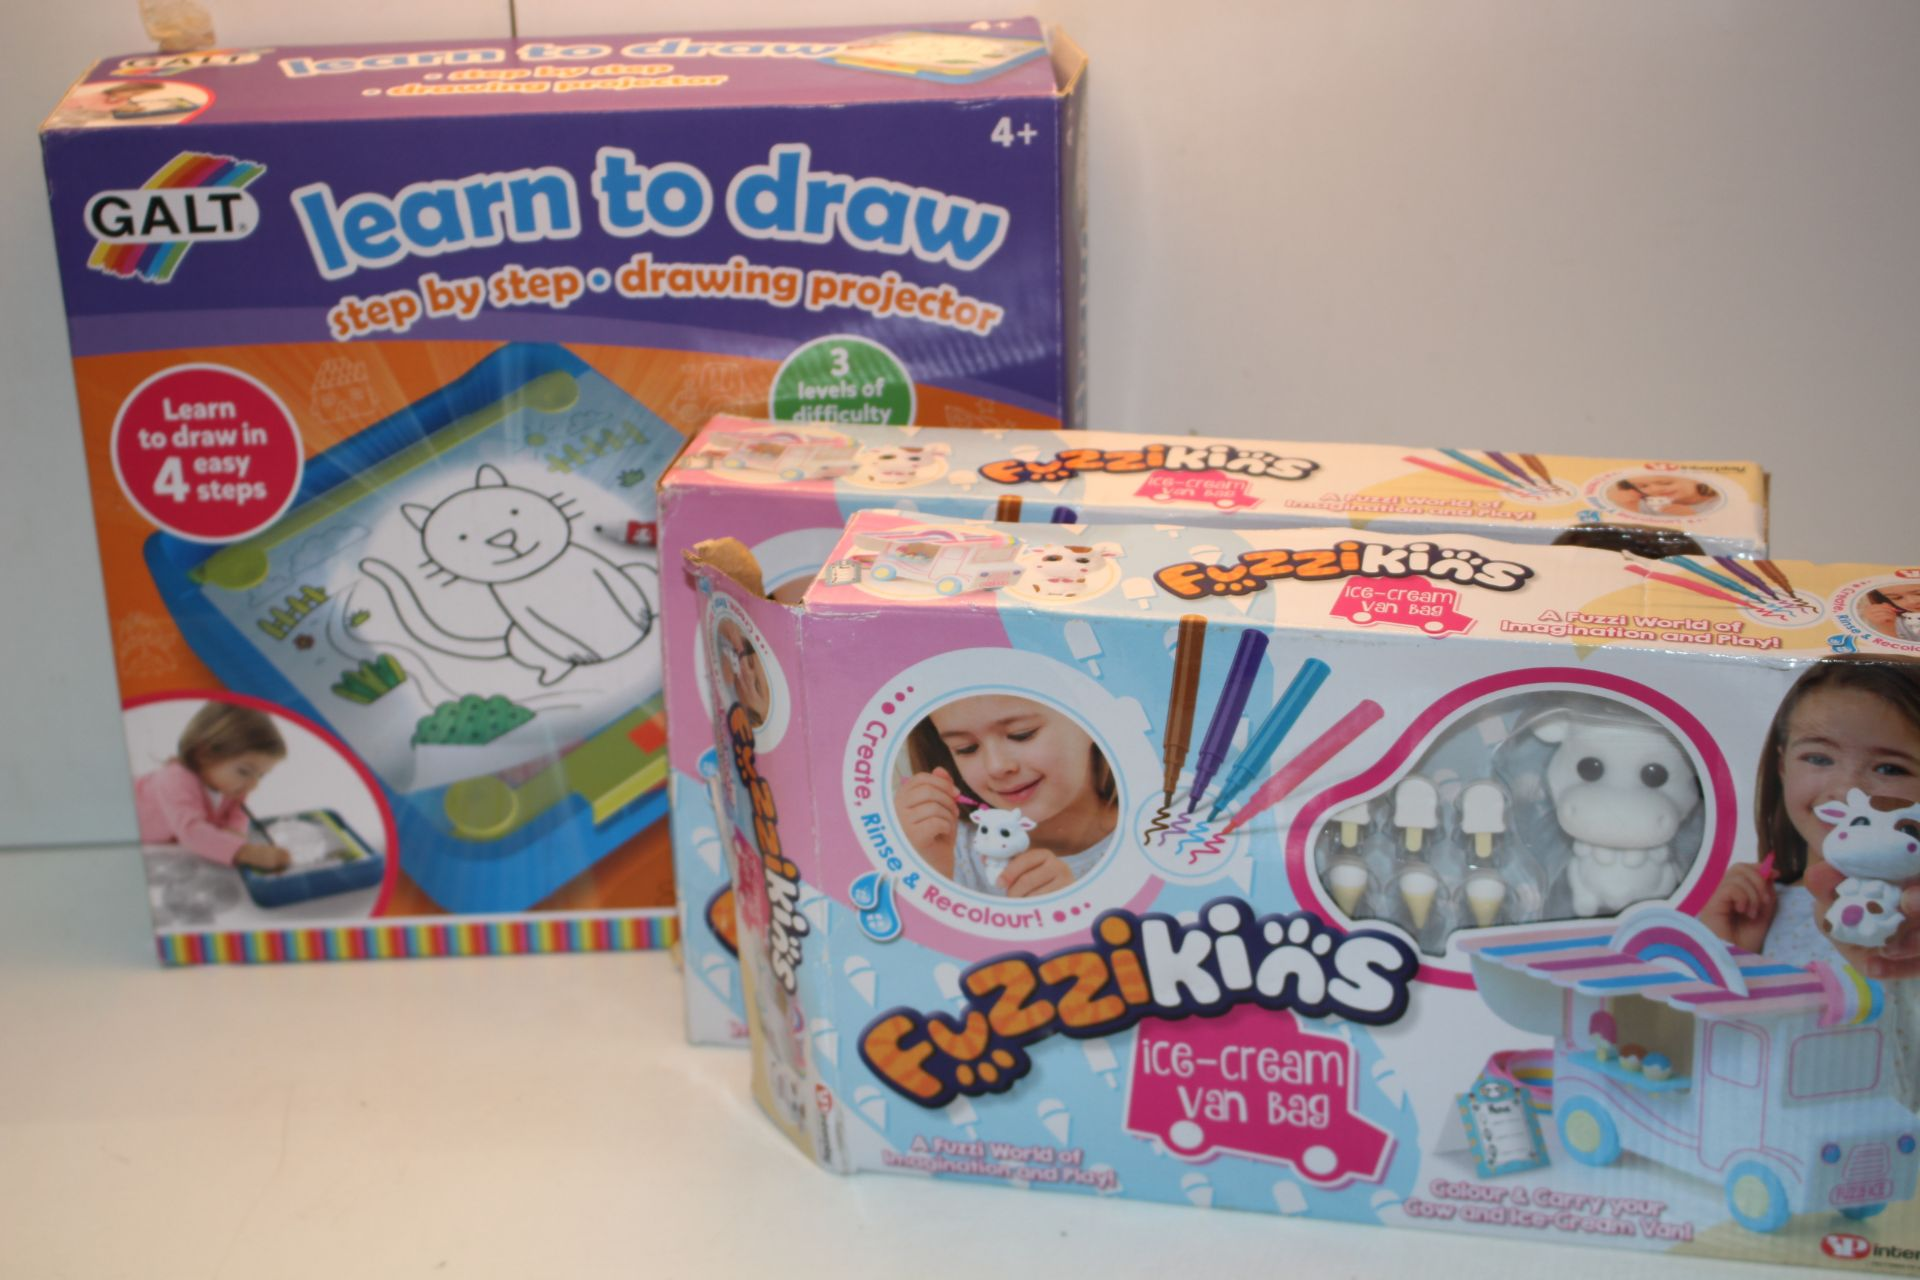 3X ASSORTED BOXED ITEMS TO INCLUDE GALT LEARN TO DRAW & OTHER 9IMAGE DEPICTS STOCK)Condition